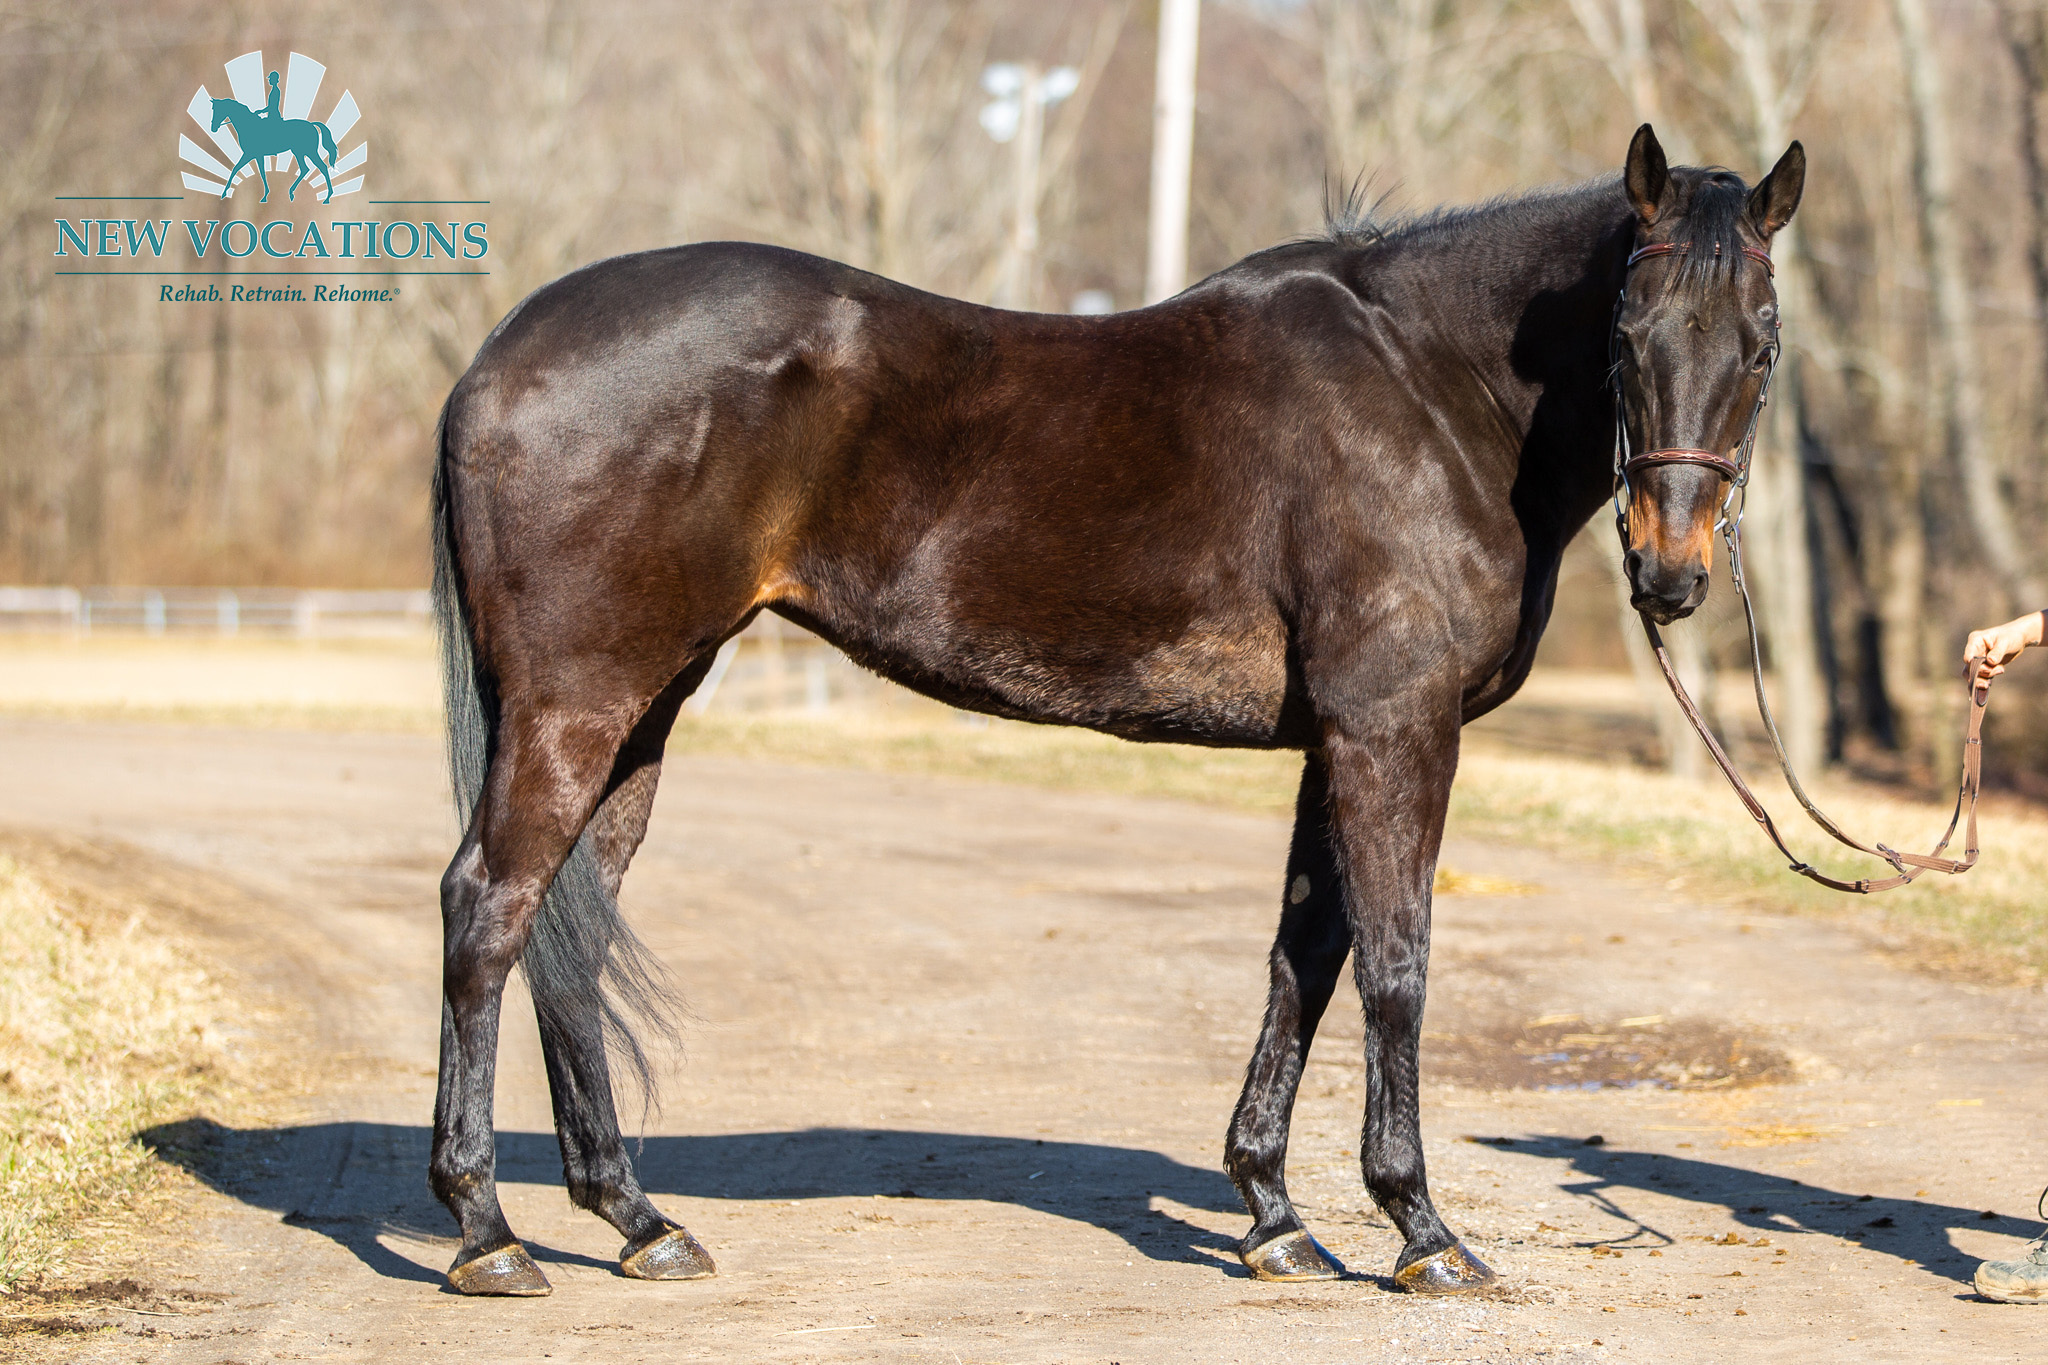 Sweet Heat, an adoptable Thoroughbred at New Vocations in Ohio